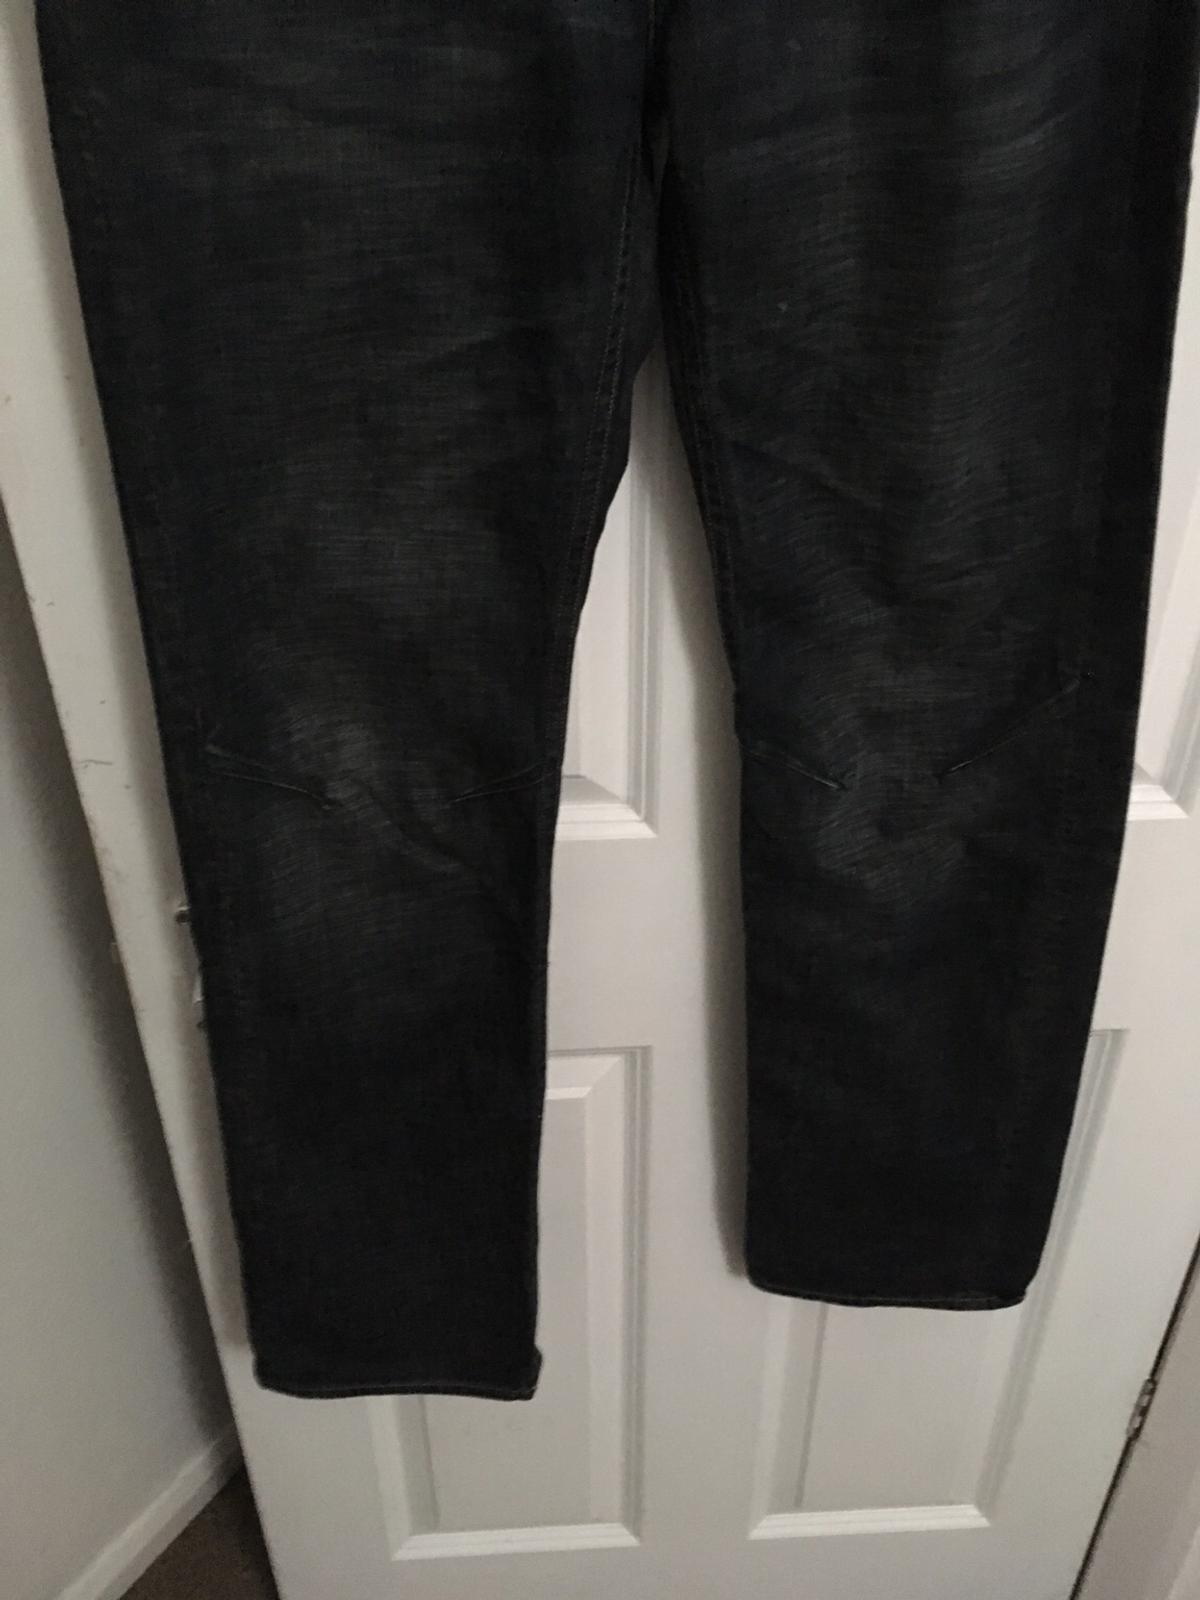 All Saints Waist 32 Spitalfields Denim Jeans Straight Hardly Used It. Worn it a few times. Brilliant condition Style Jeans: dope texel Any questions contact me